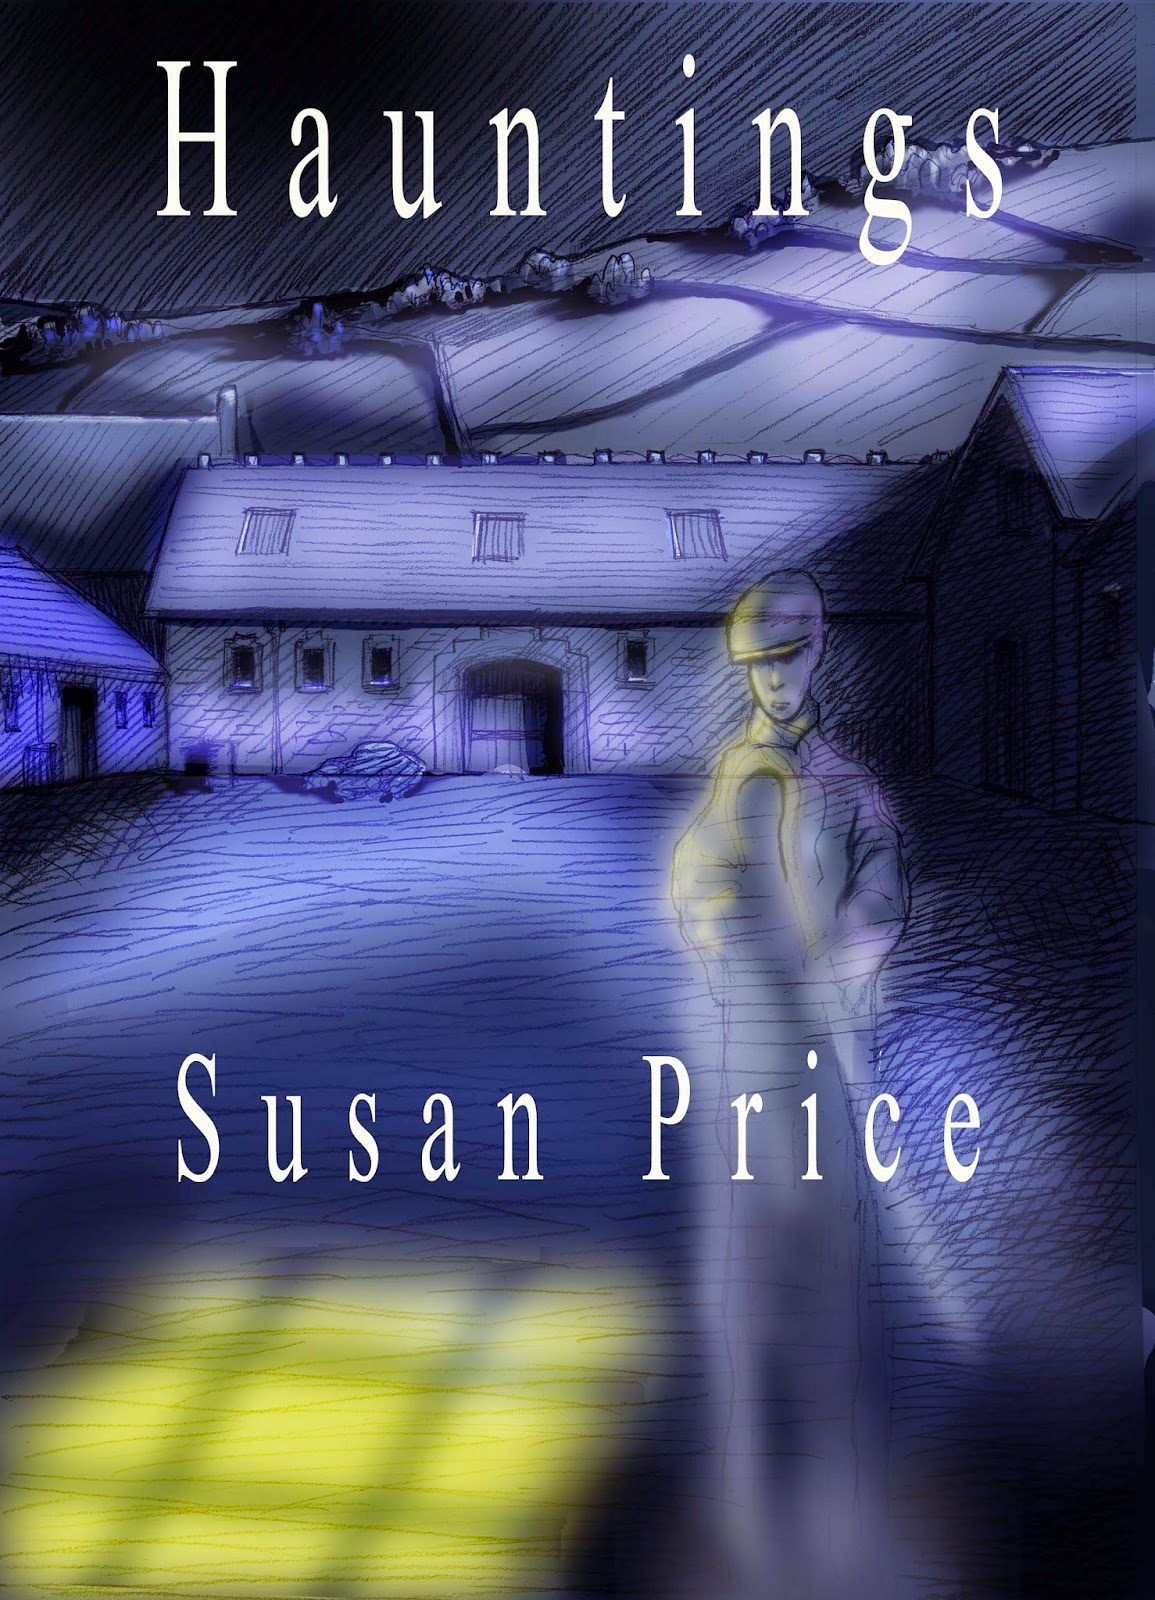 http://www.amazon.co.uk/Hauntings-Eerie-Stories-Haunting-Susan-ebook/dp/B0060VNGKE/